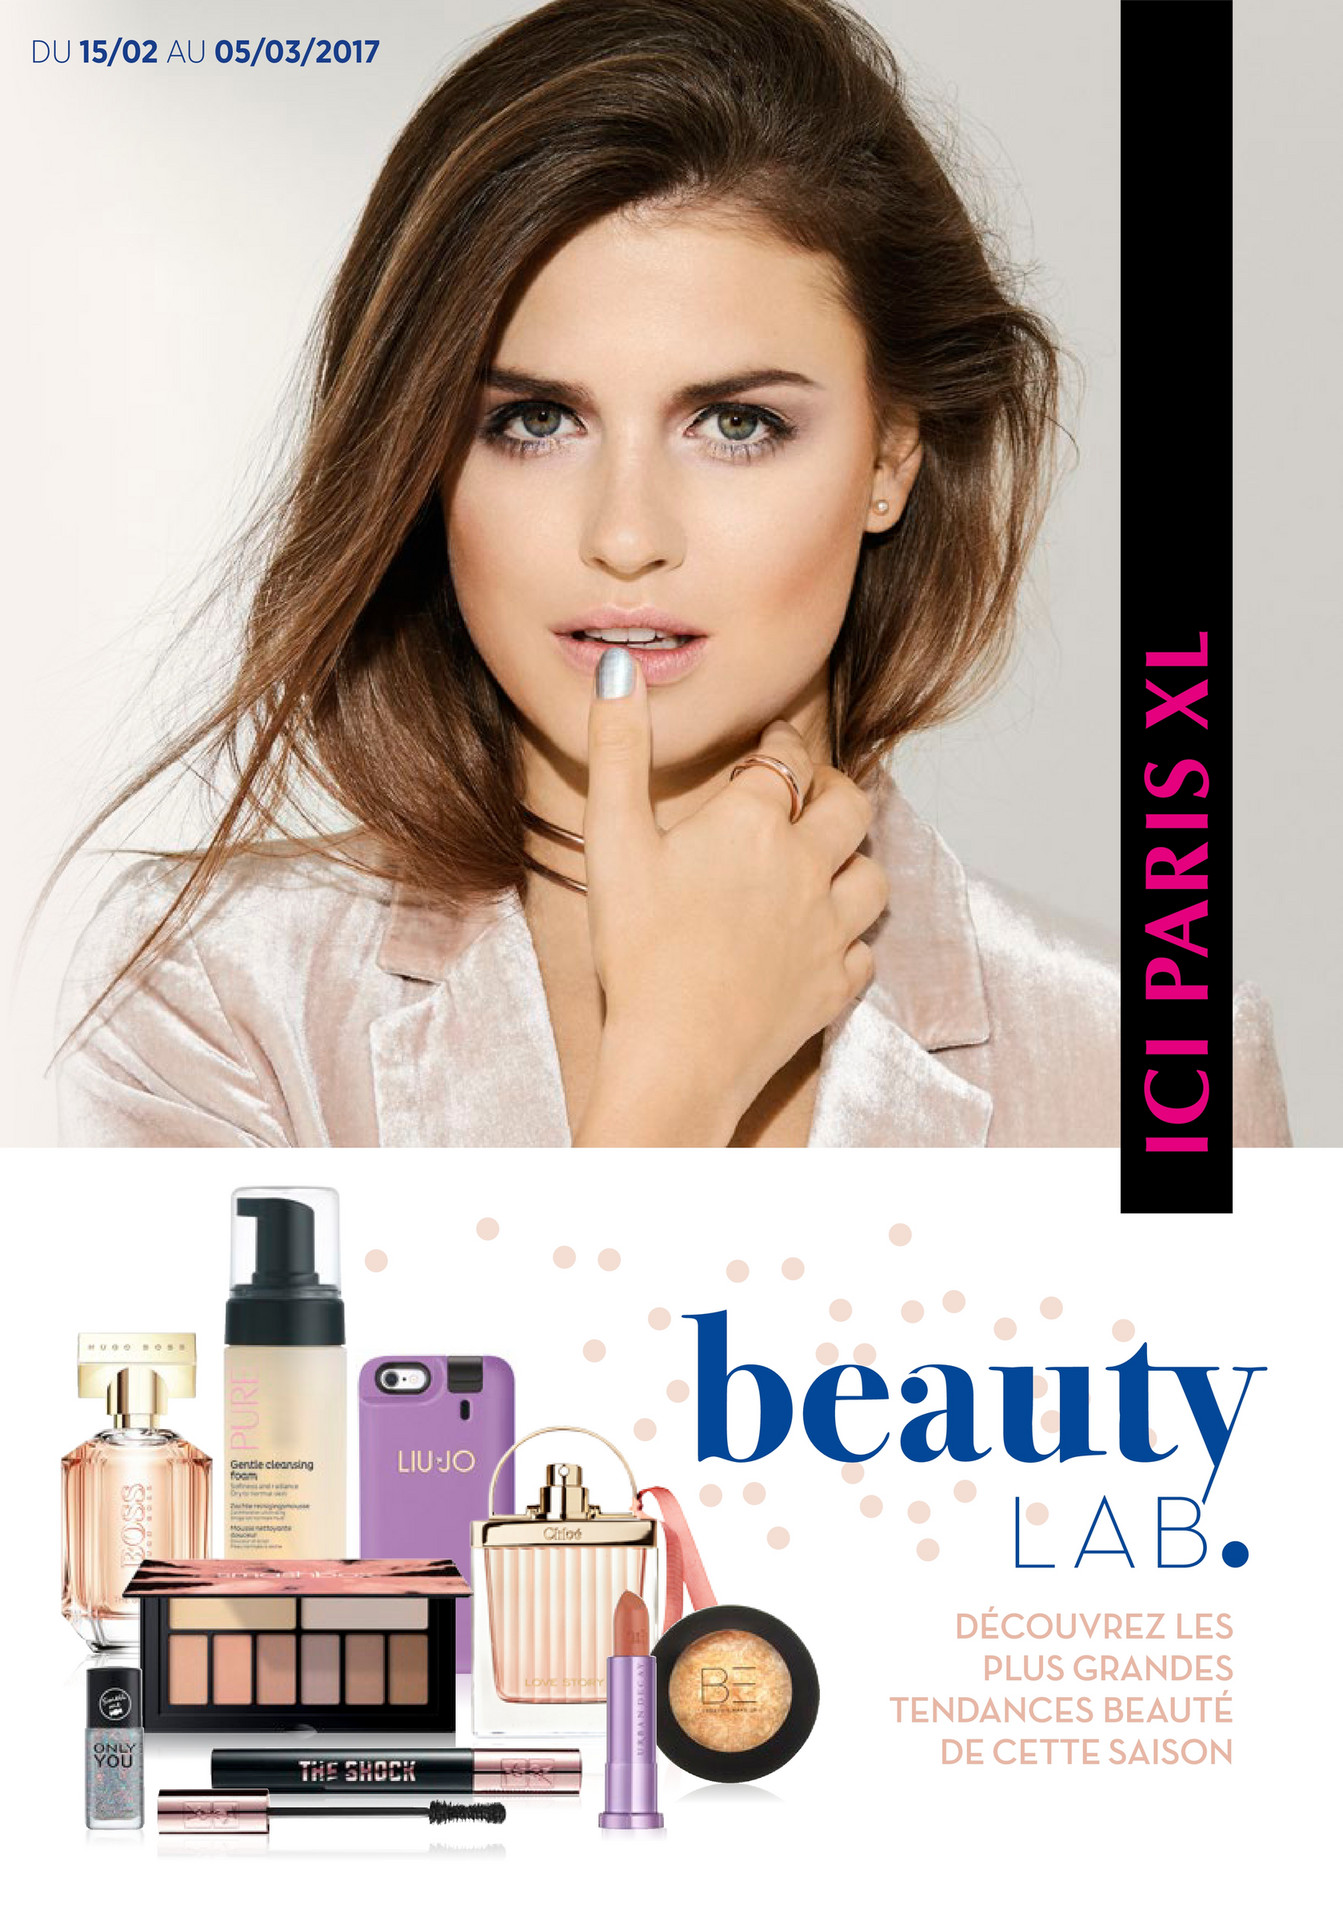 Iciparisxl be fr folder beauty lab page 1 for Scadenza ici 2017